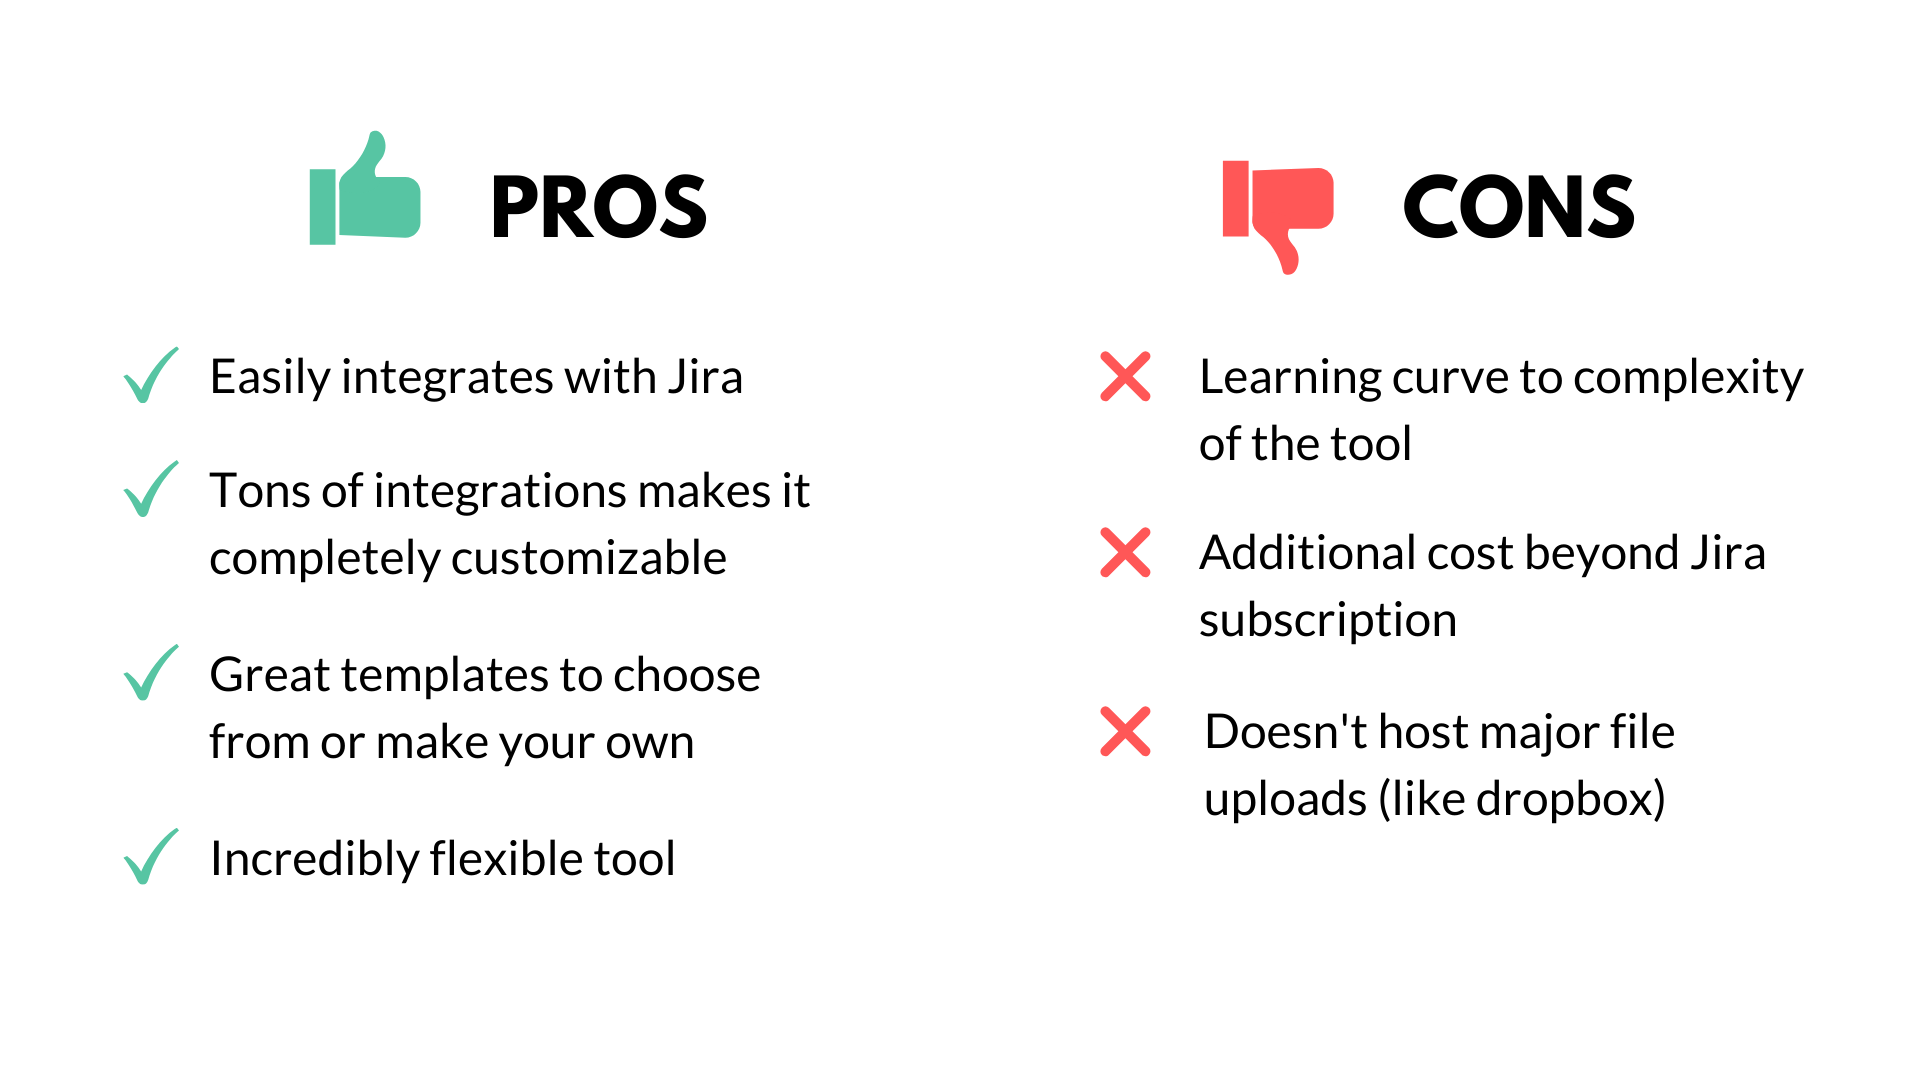 pros and cons chart of Confluence tool, black green and red